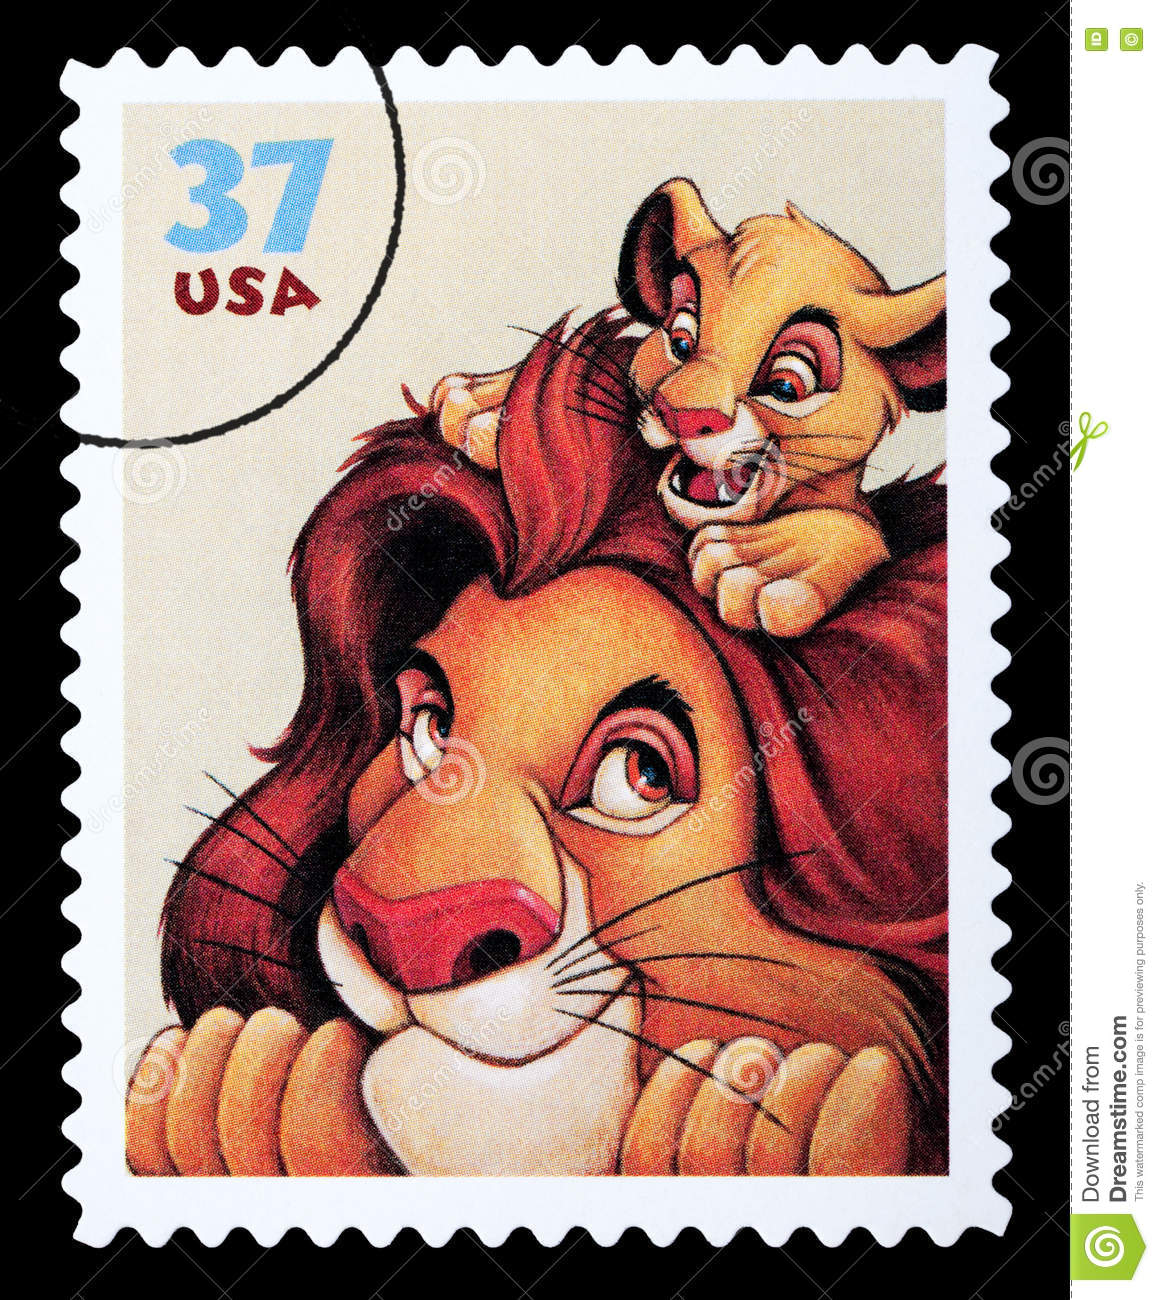 Lion King Disney Postage Stamp